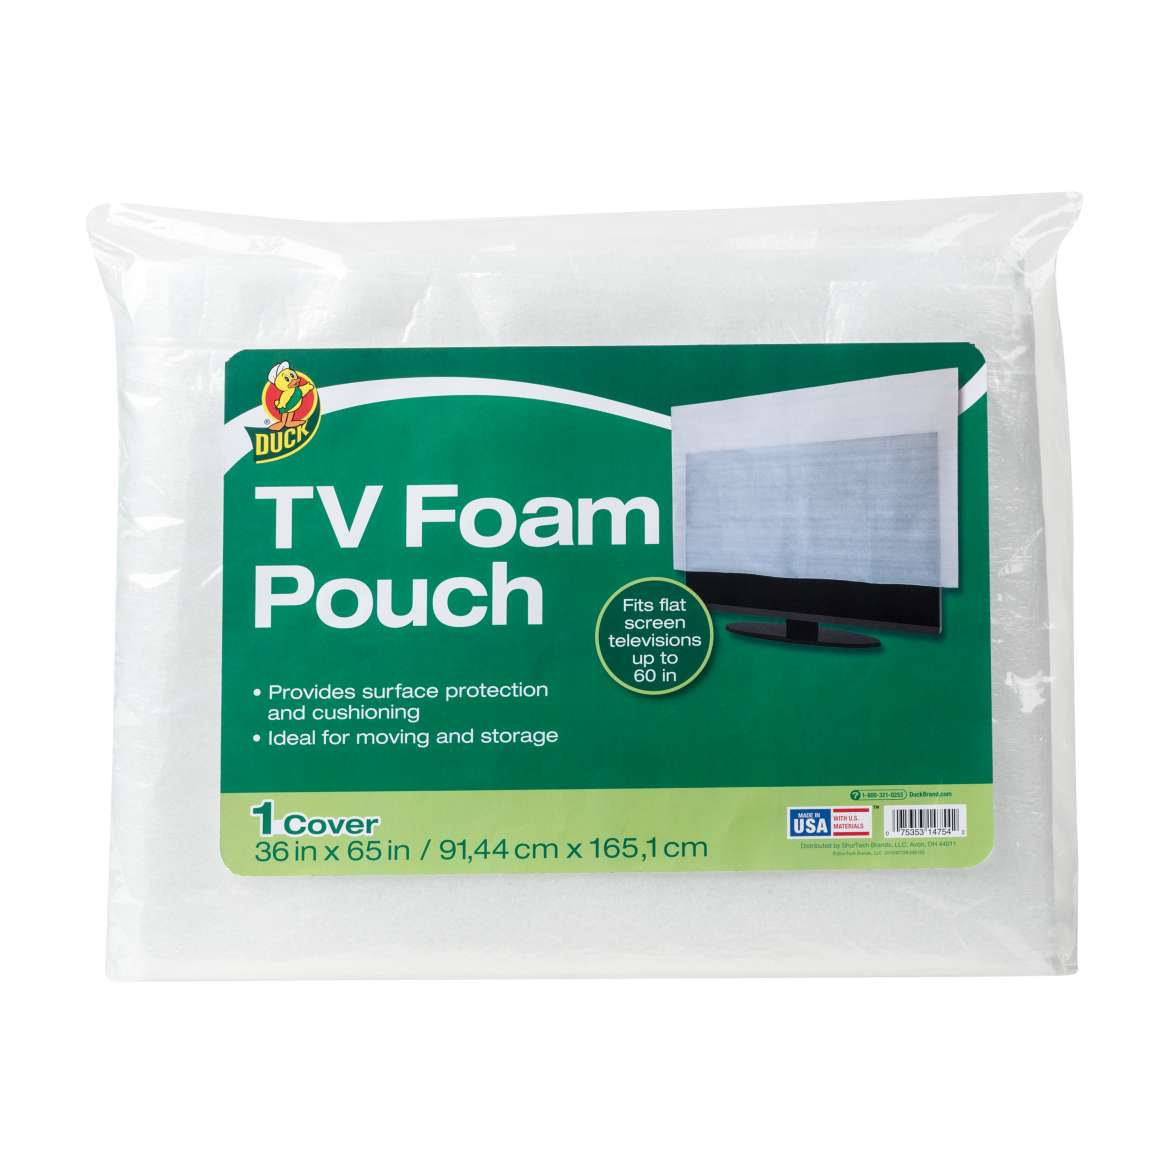 TV Foam Pouch